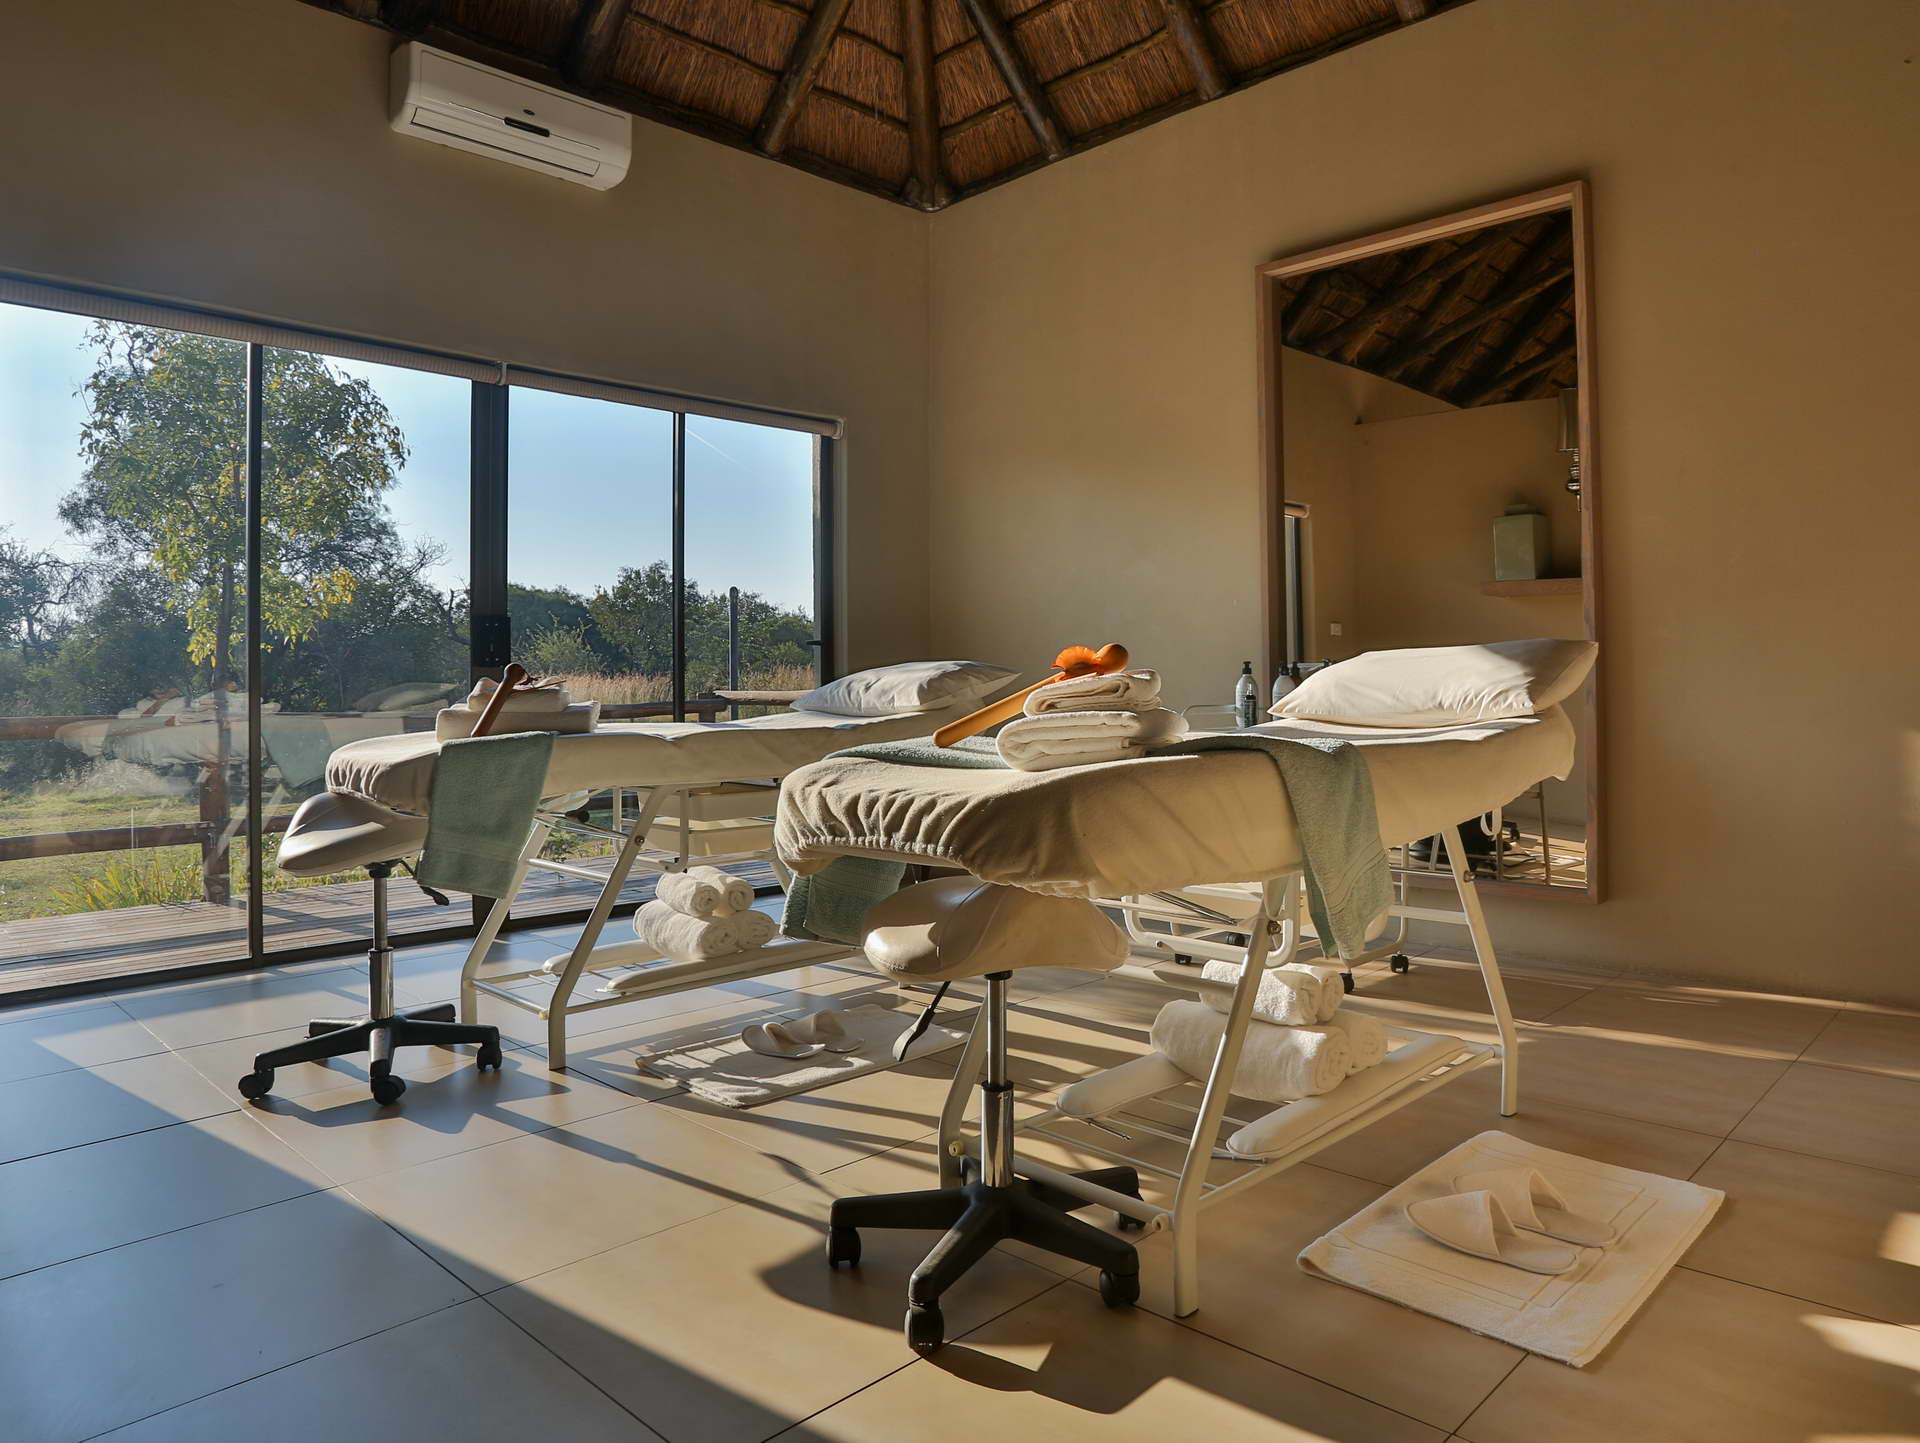 kosher safari lodge | Day safari packages spa accommodation